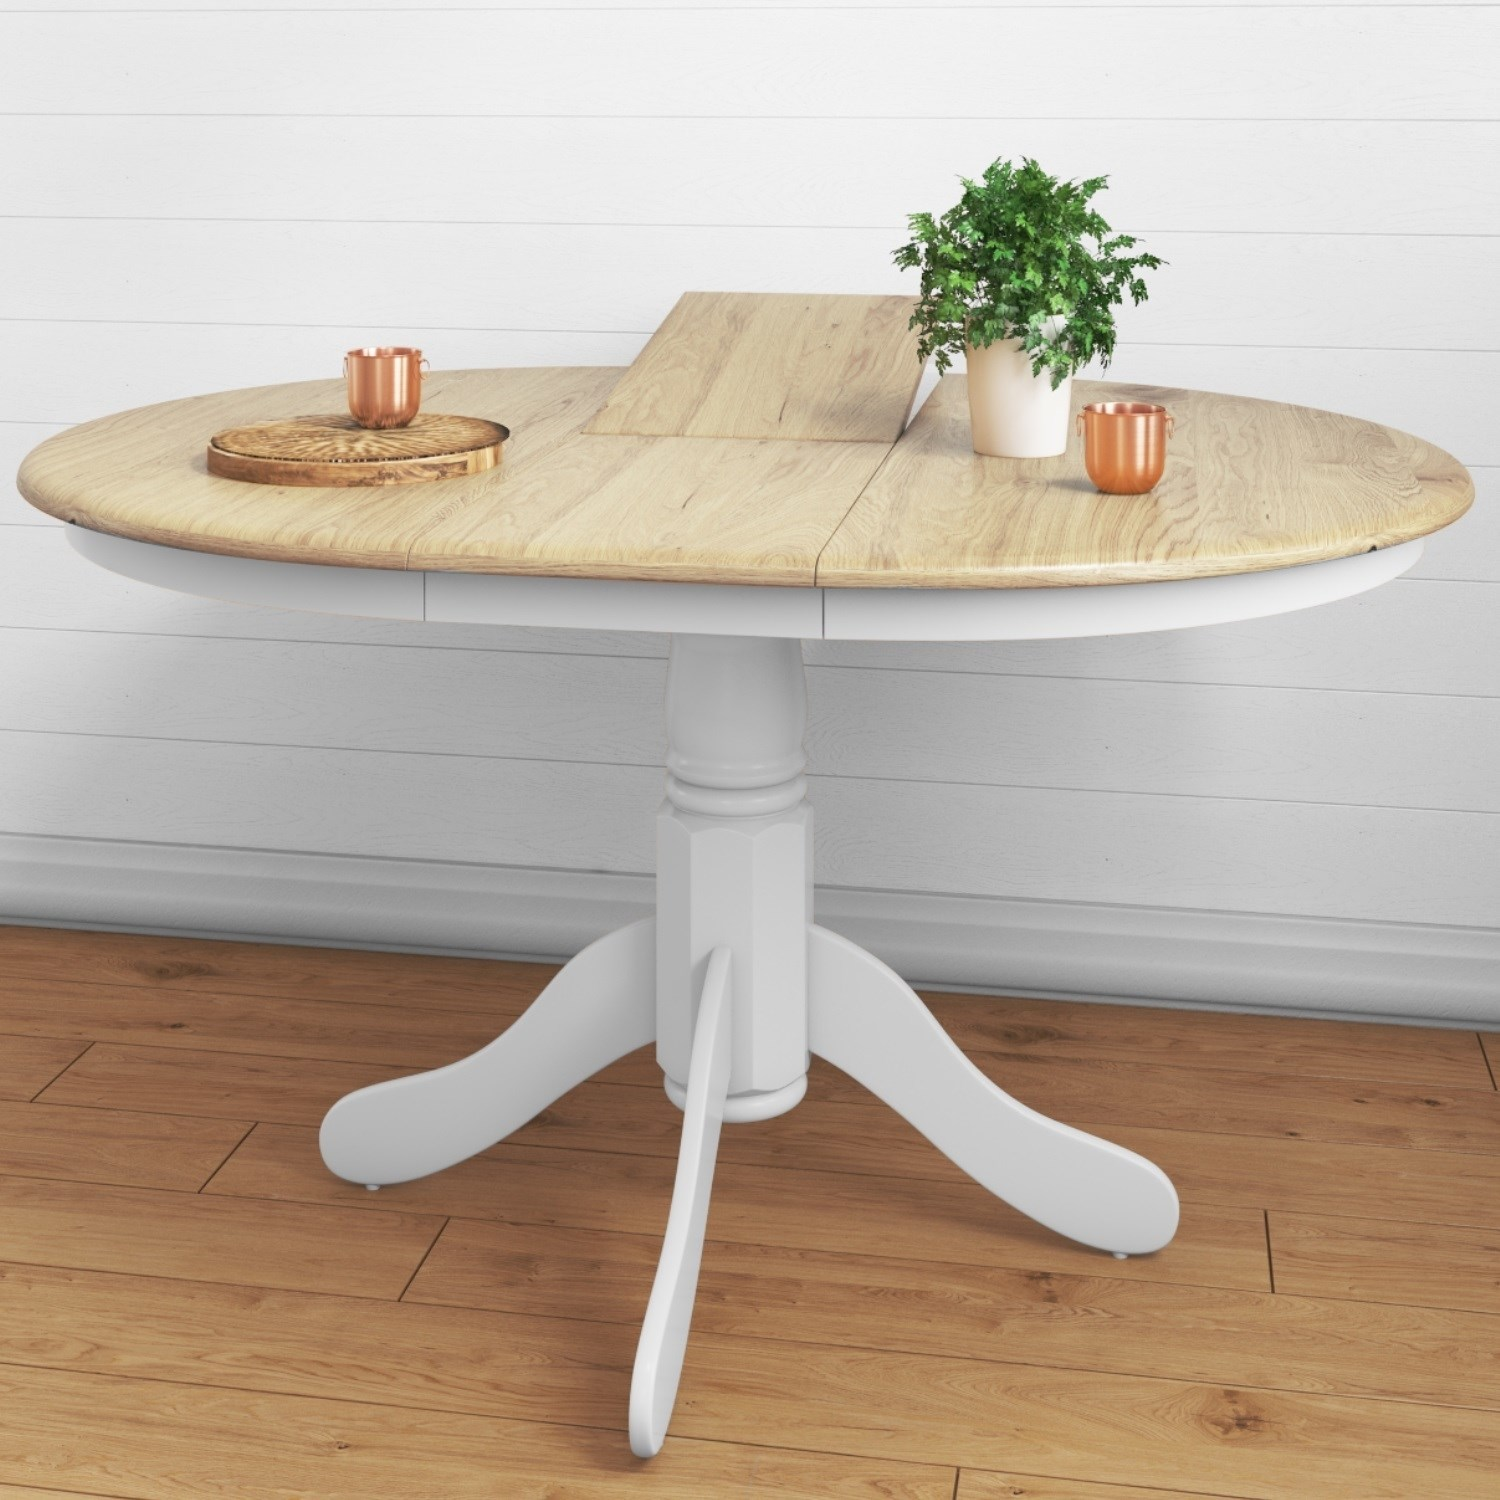 4 seater extendable round dining table